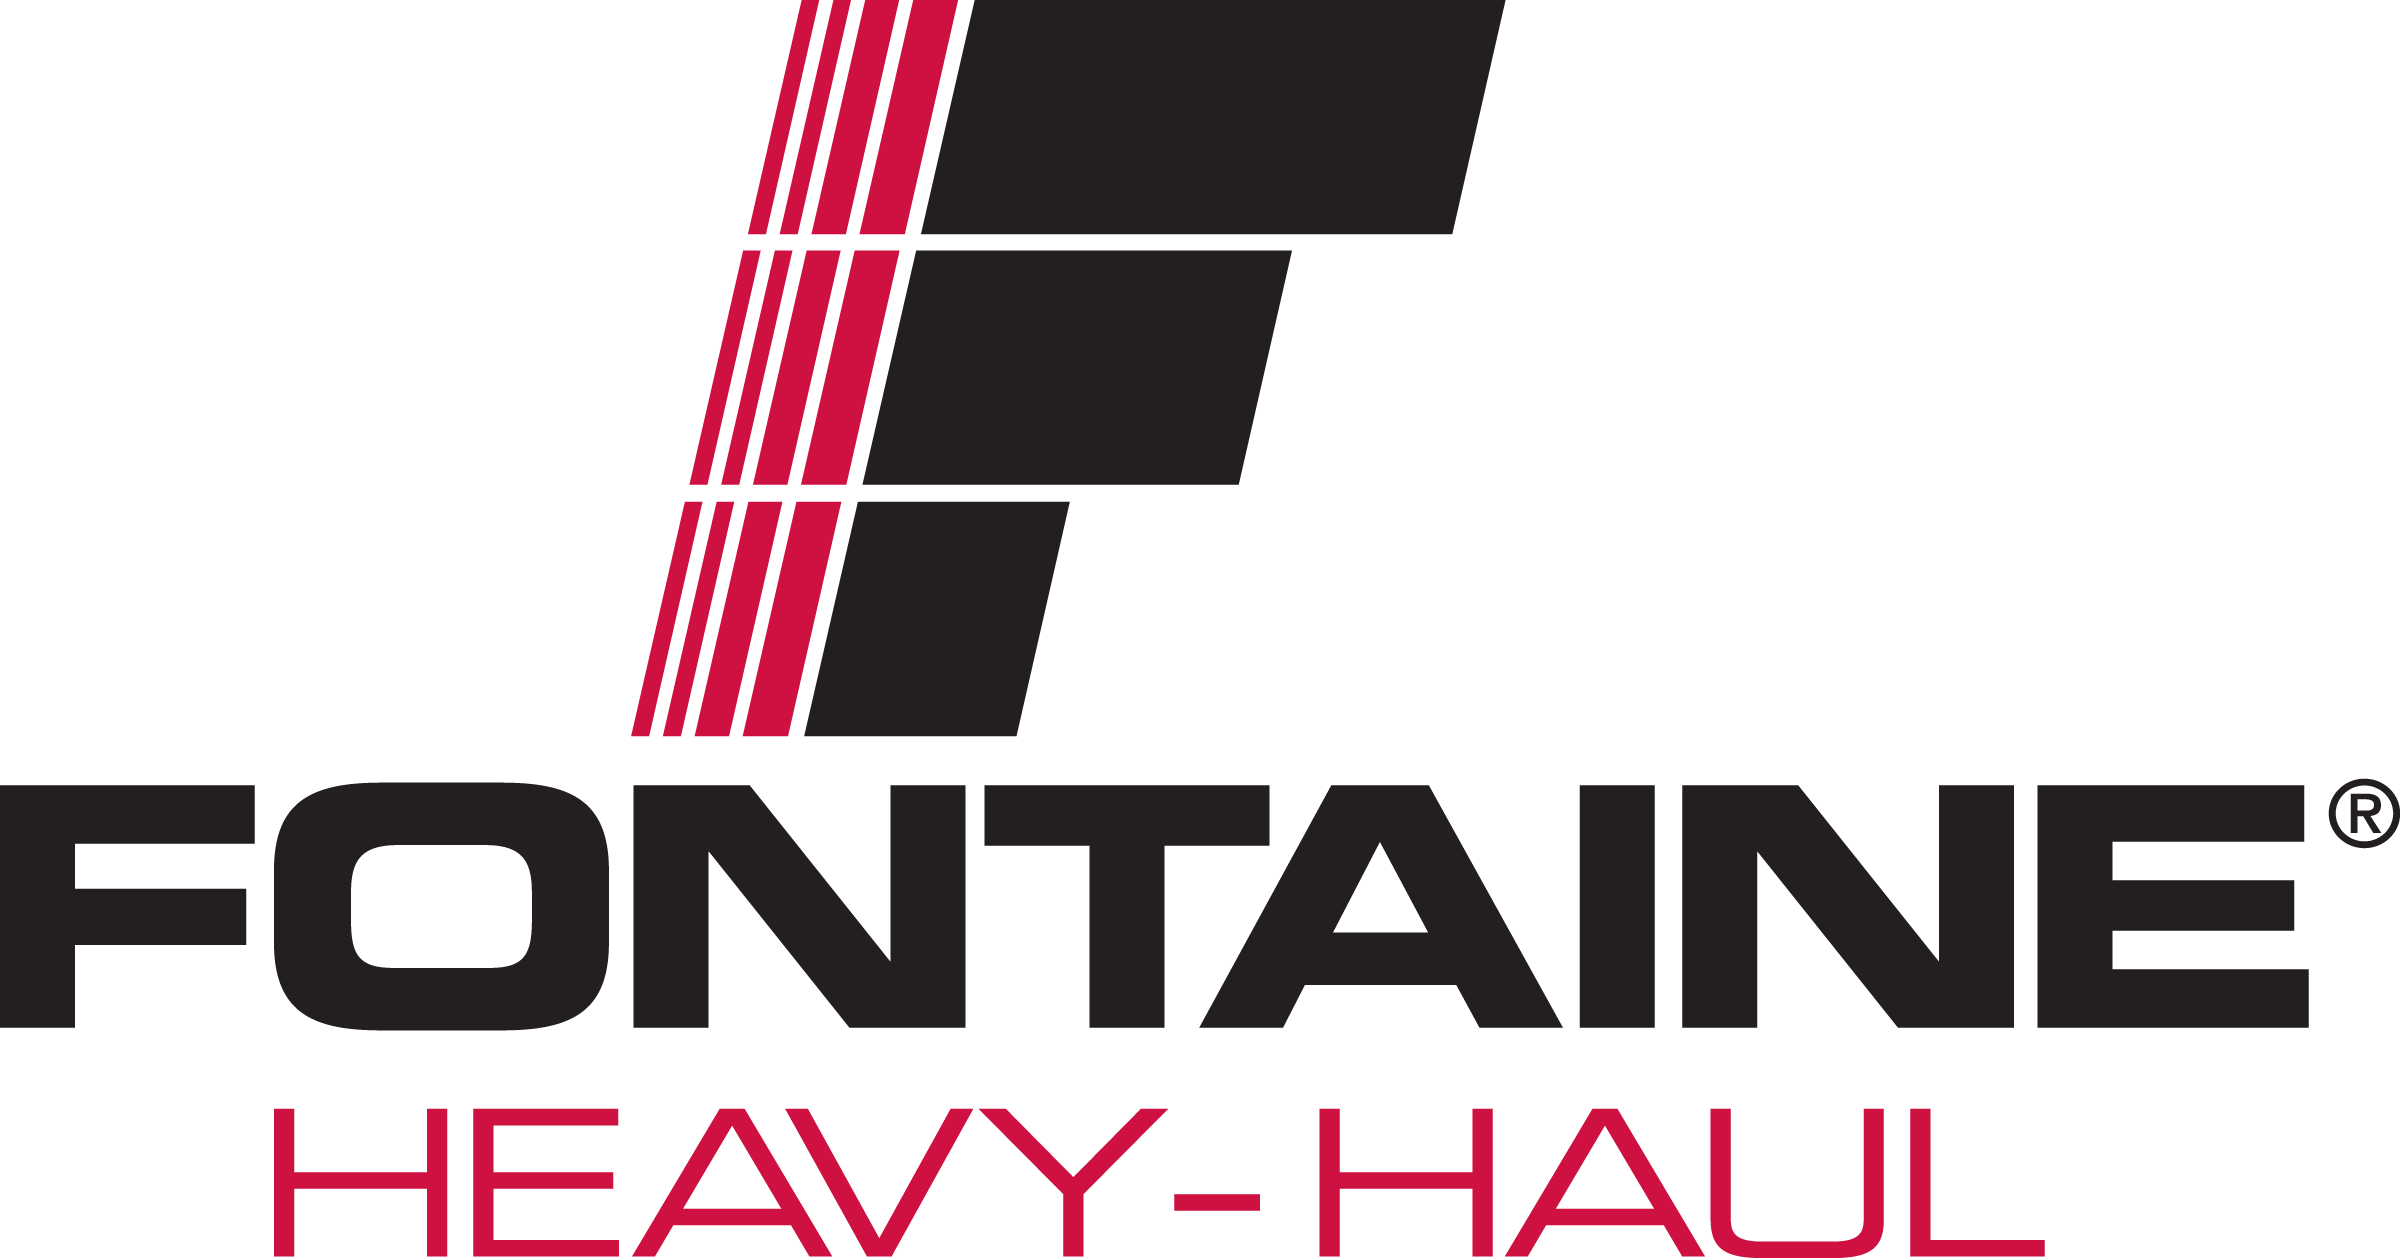 fontaine heavy-haul logo